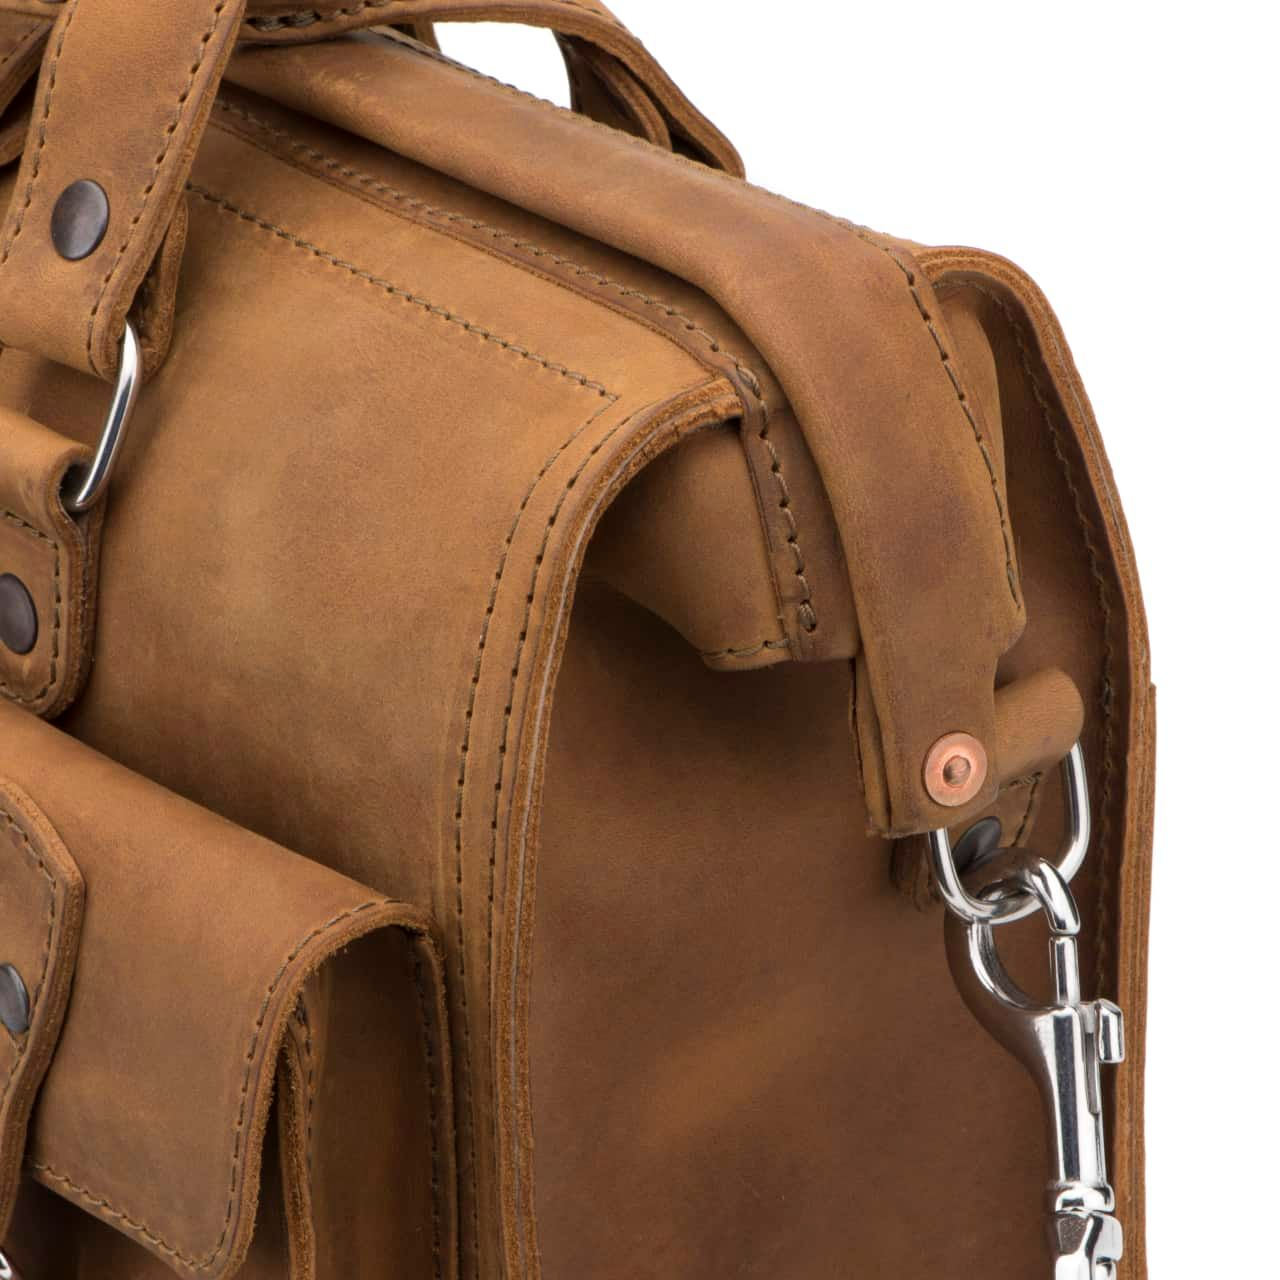 Leather Flight Bag in color Tobacco zoomed in on the Copper Riveted Hinge Closure and D Ring With Attached Strap Clasp